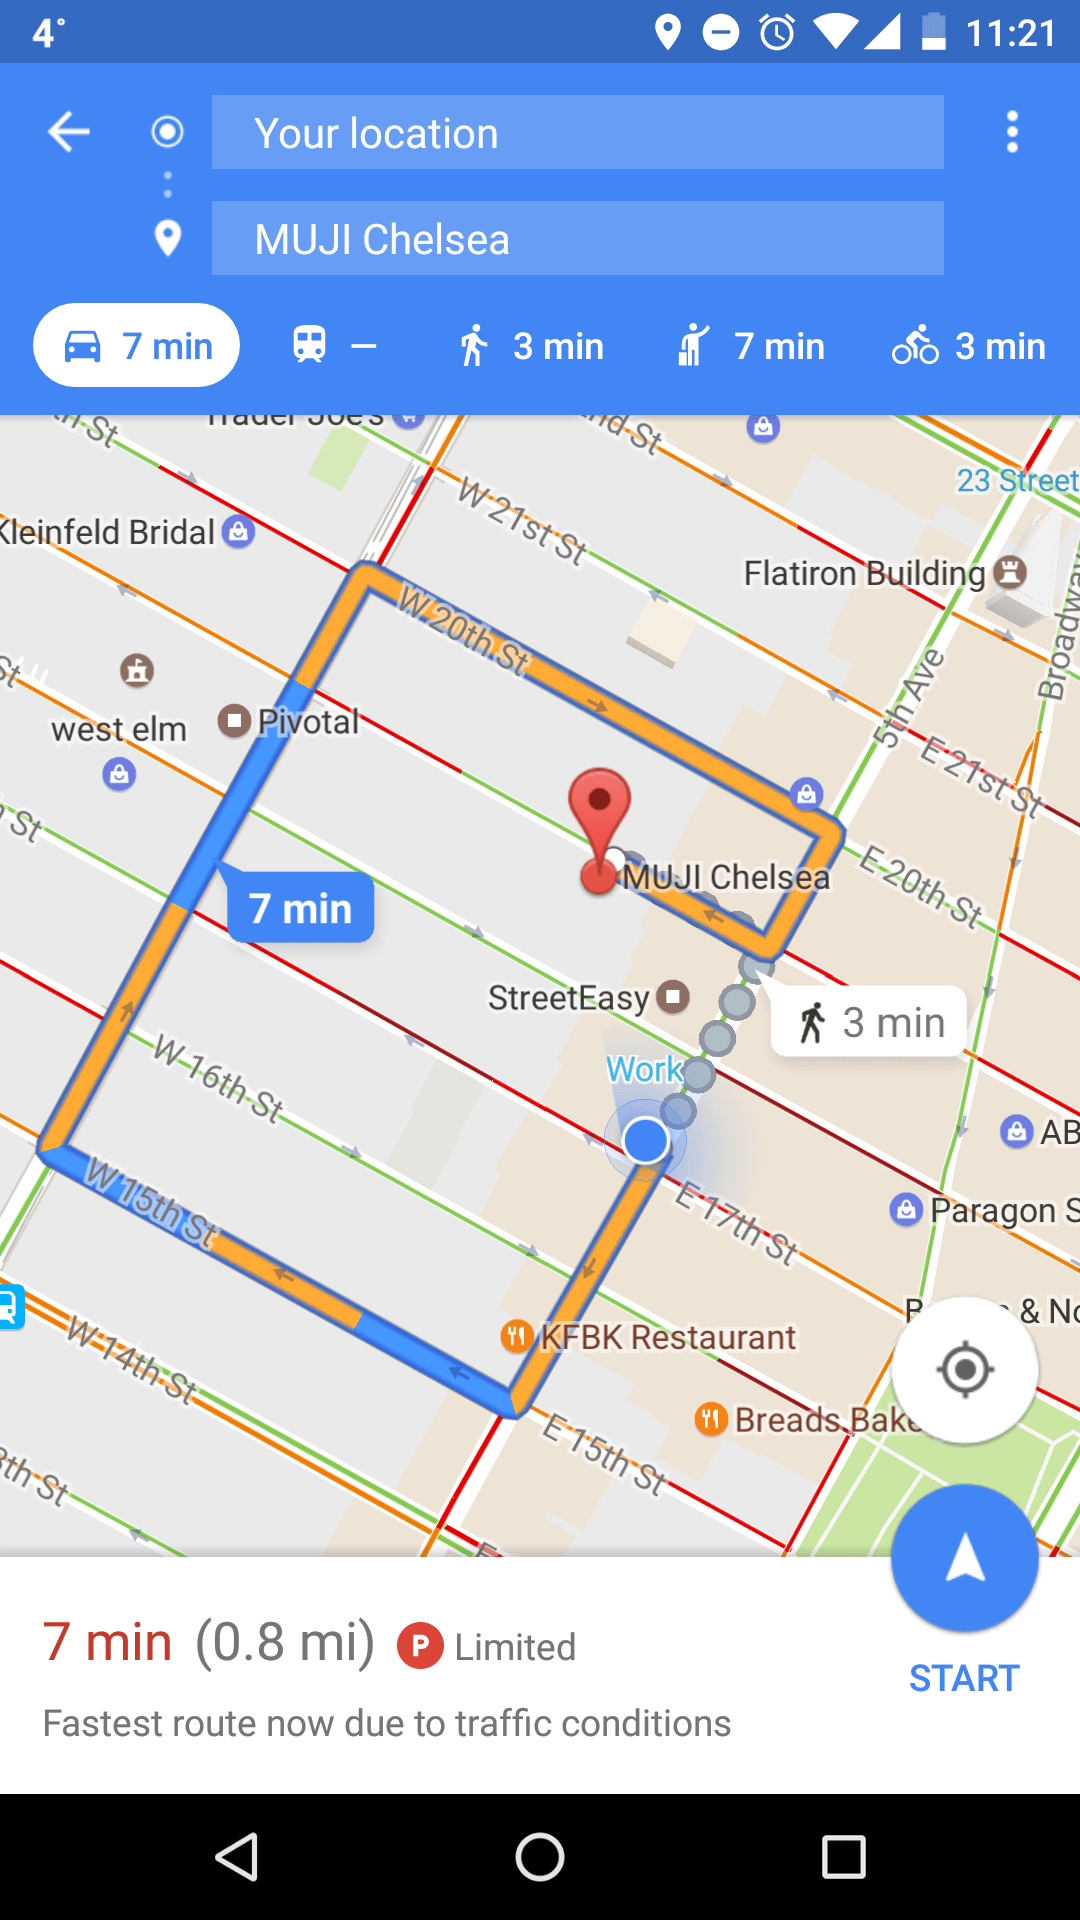 Google Maps Beta adds parking info and shows parking availability status